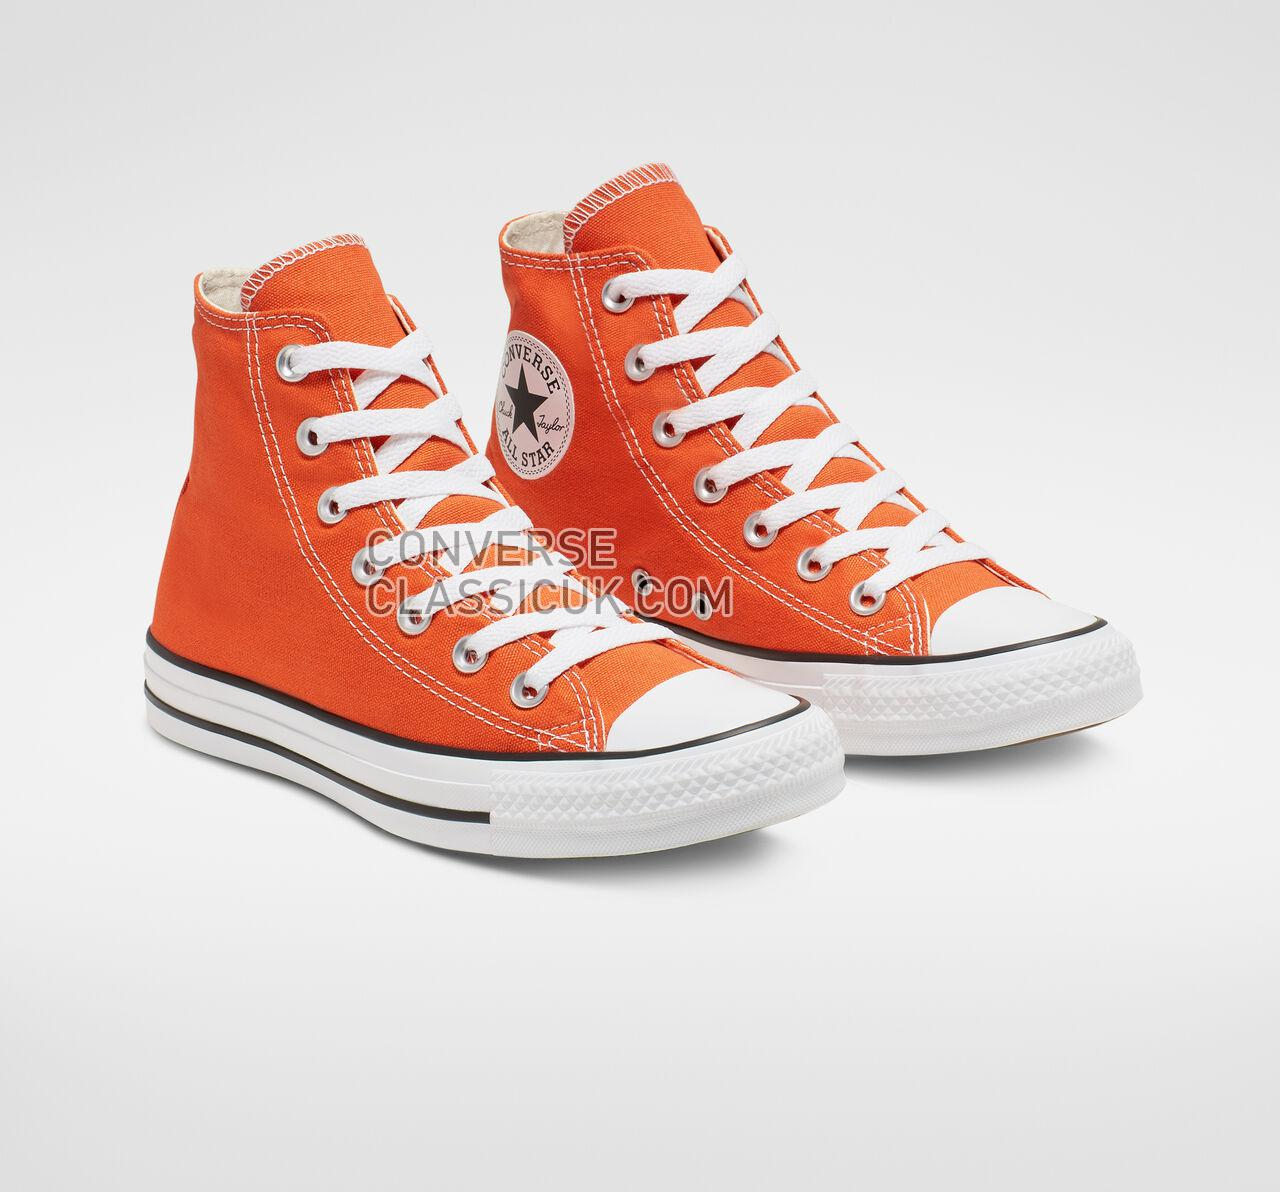 Converse Chuck Taylor All Star Seasonal Color High Top Mens Womens Unisex 164700F Golden Poppy/White/Black Shoes